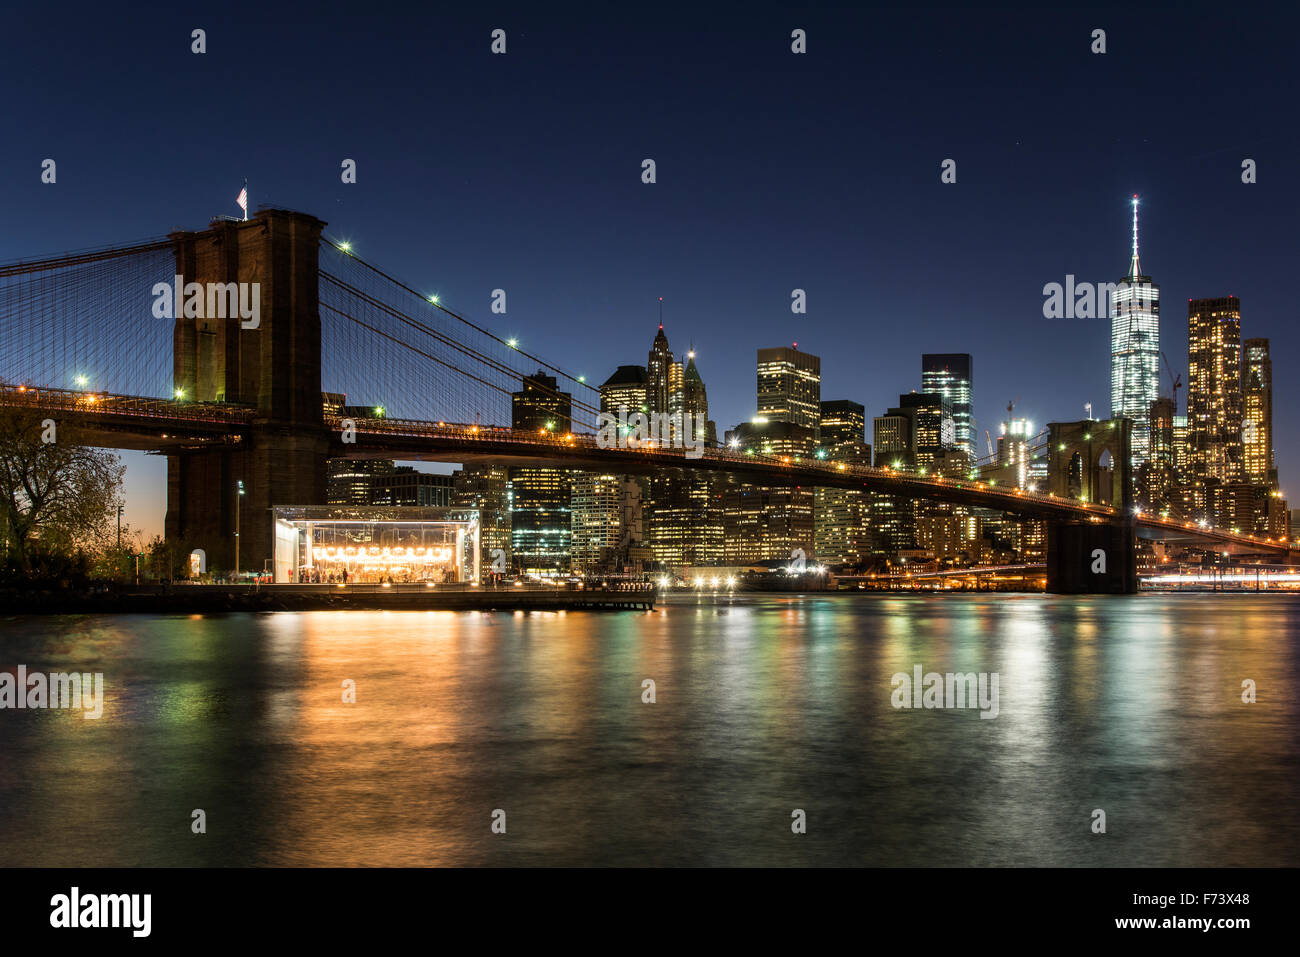 Vista nocturna del Puente de Brooklyn con Manhattan Inferior, Brooklyn, Nueva York, EE.UU. Imagen De Stock